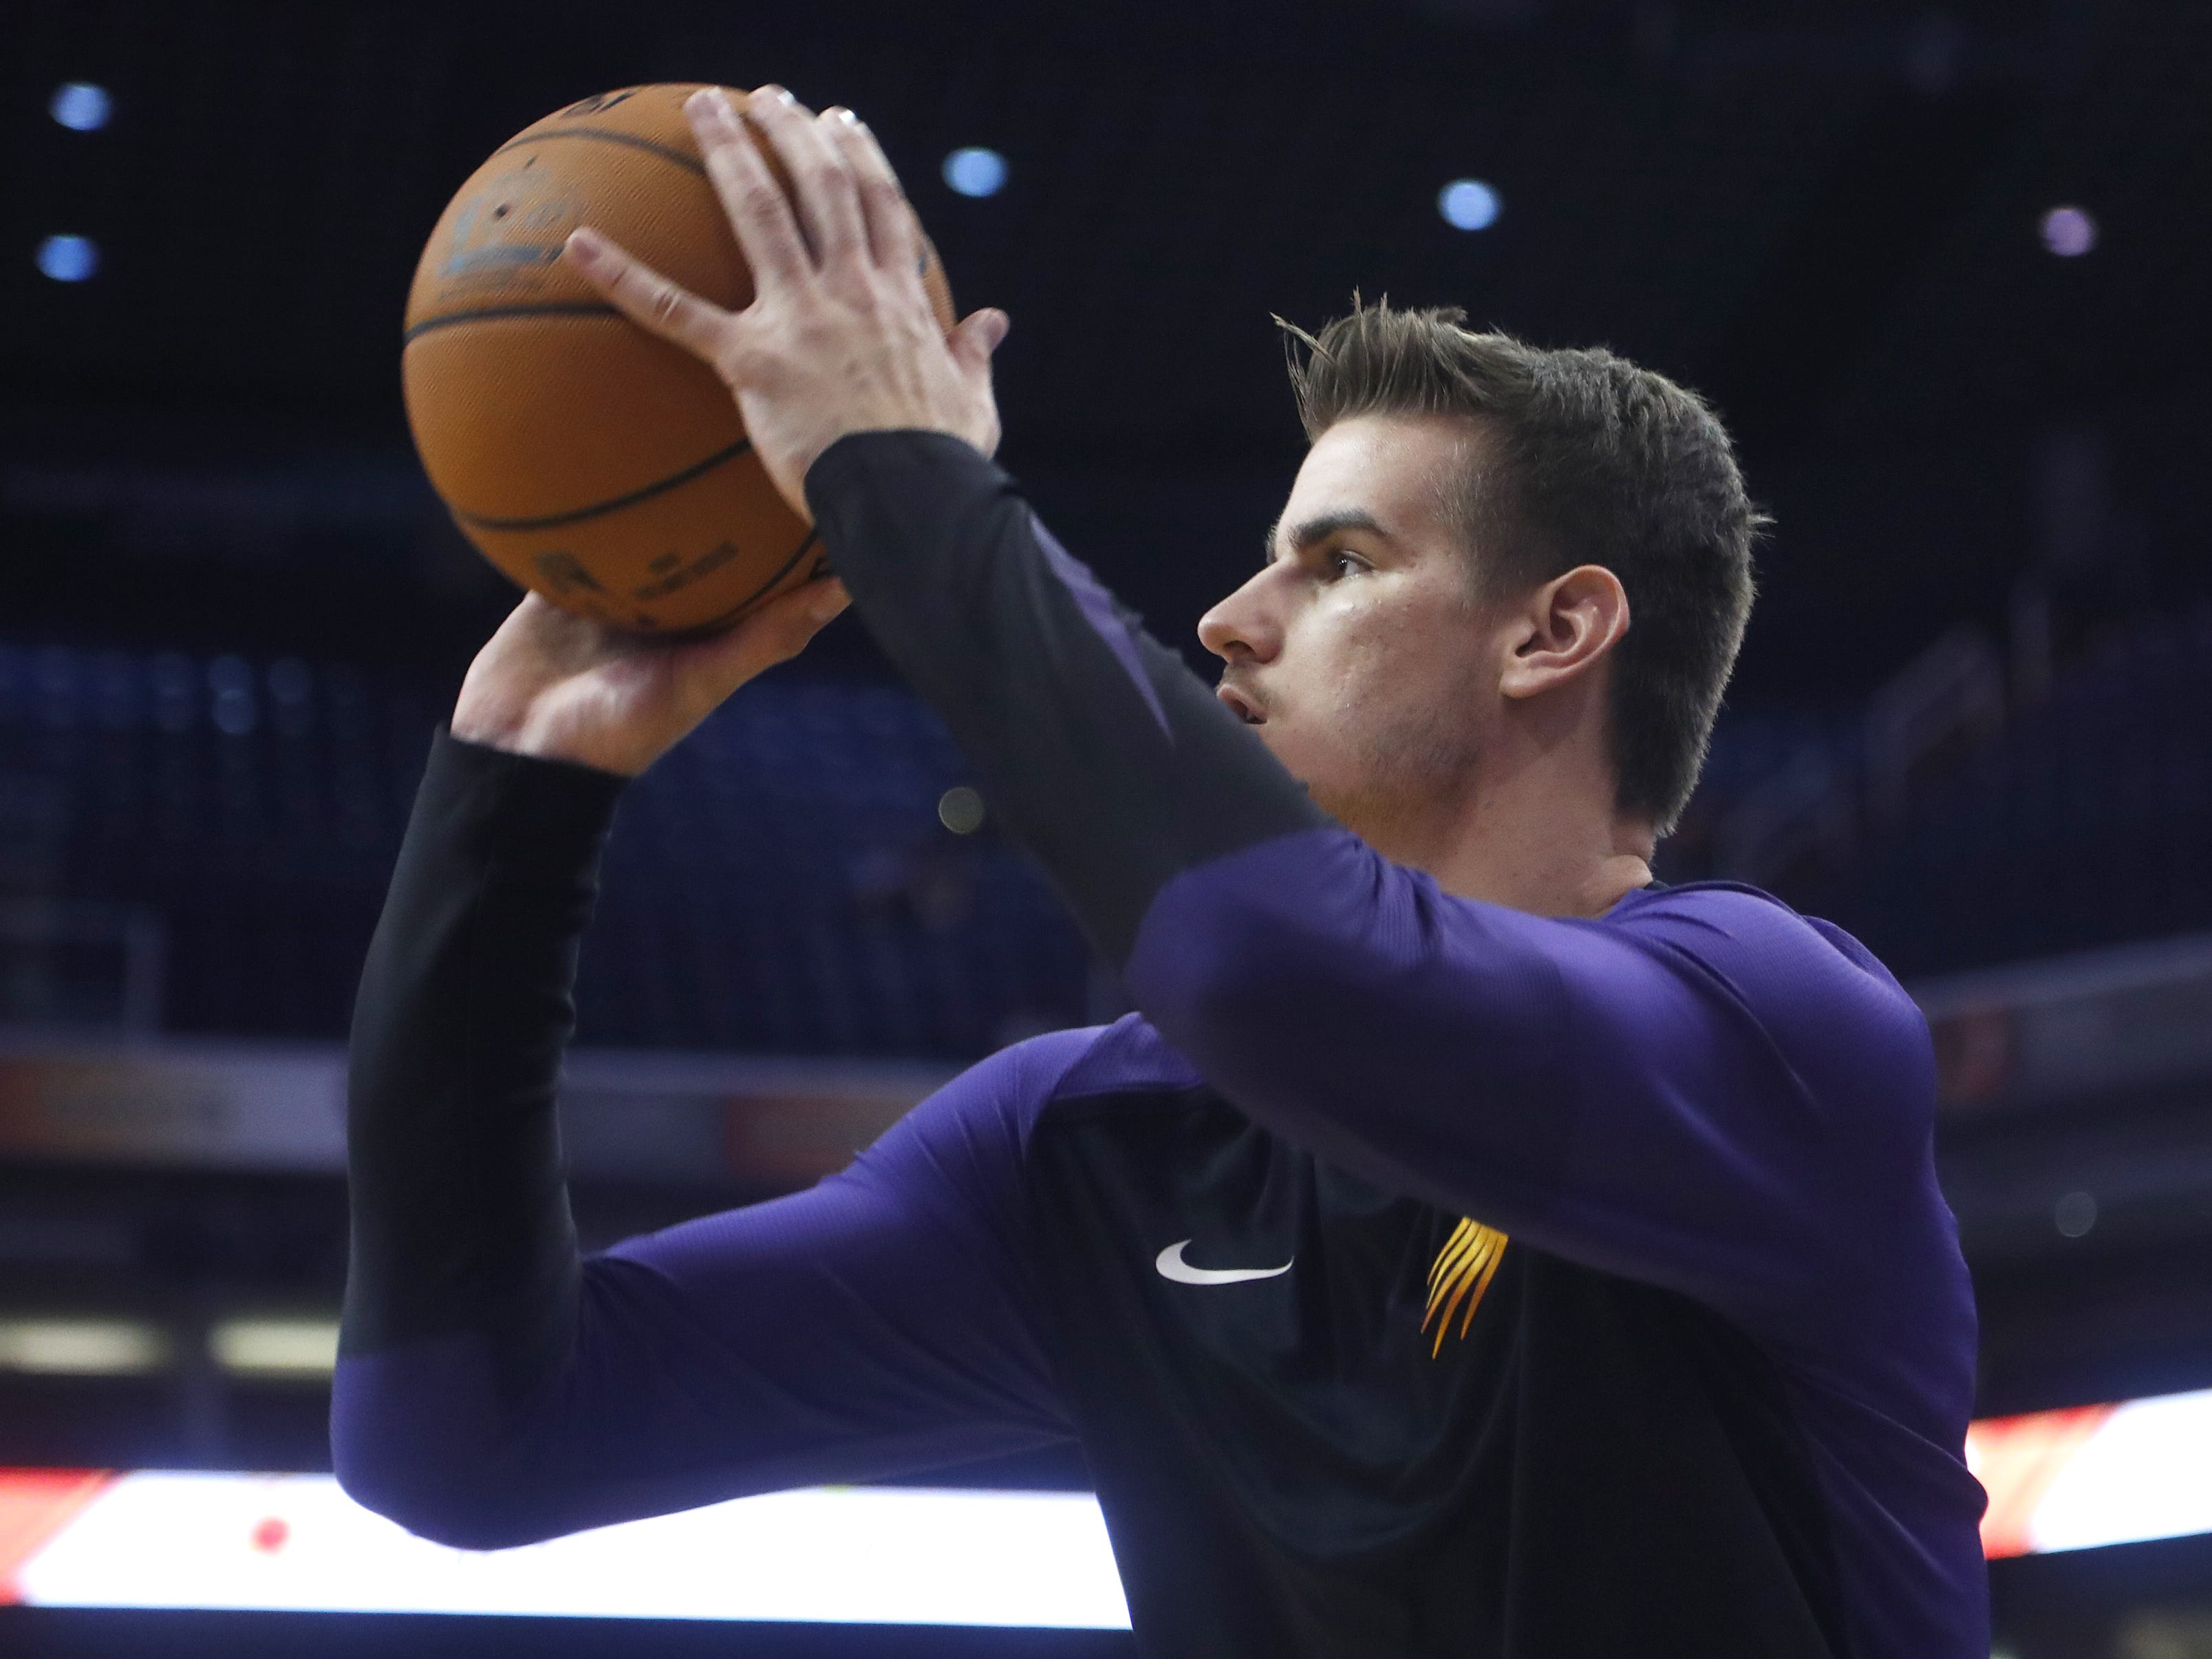 Suns Dragan Bender warms-up before a game against the Kings at Talking Stick Resort Arena in Phoenix, Ariz. on October 1, 2018.